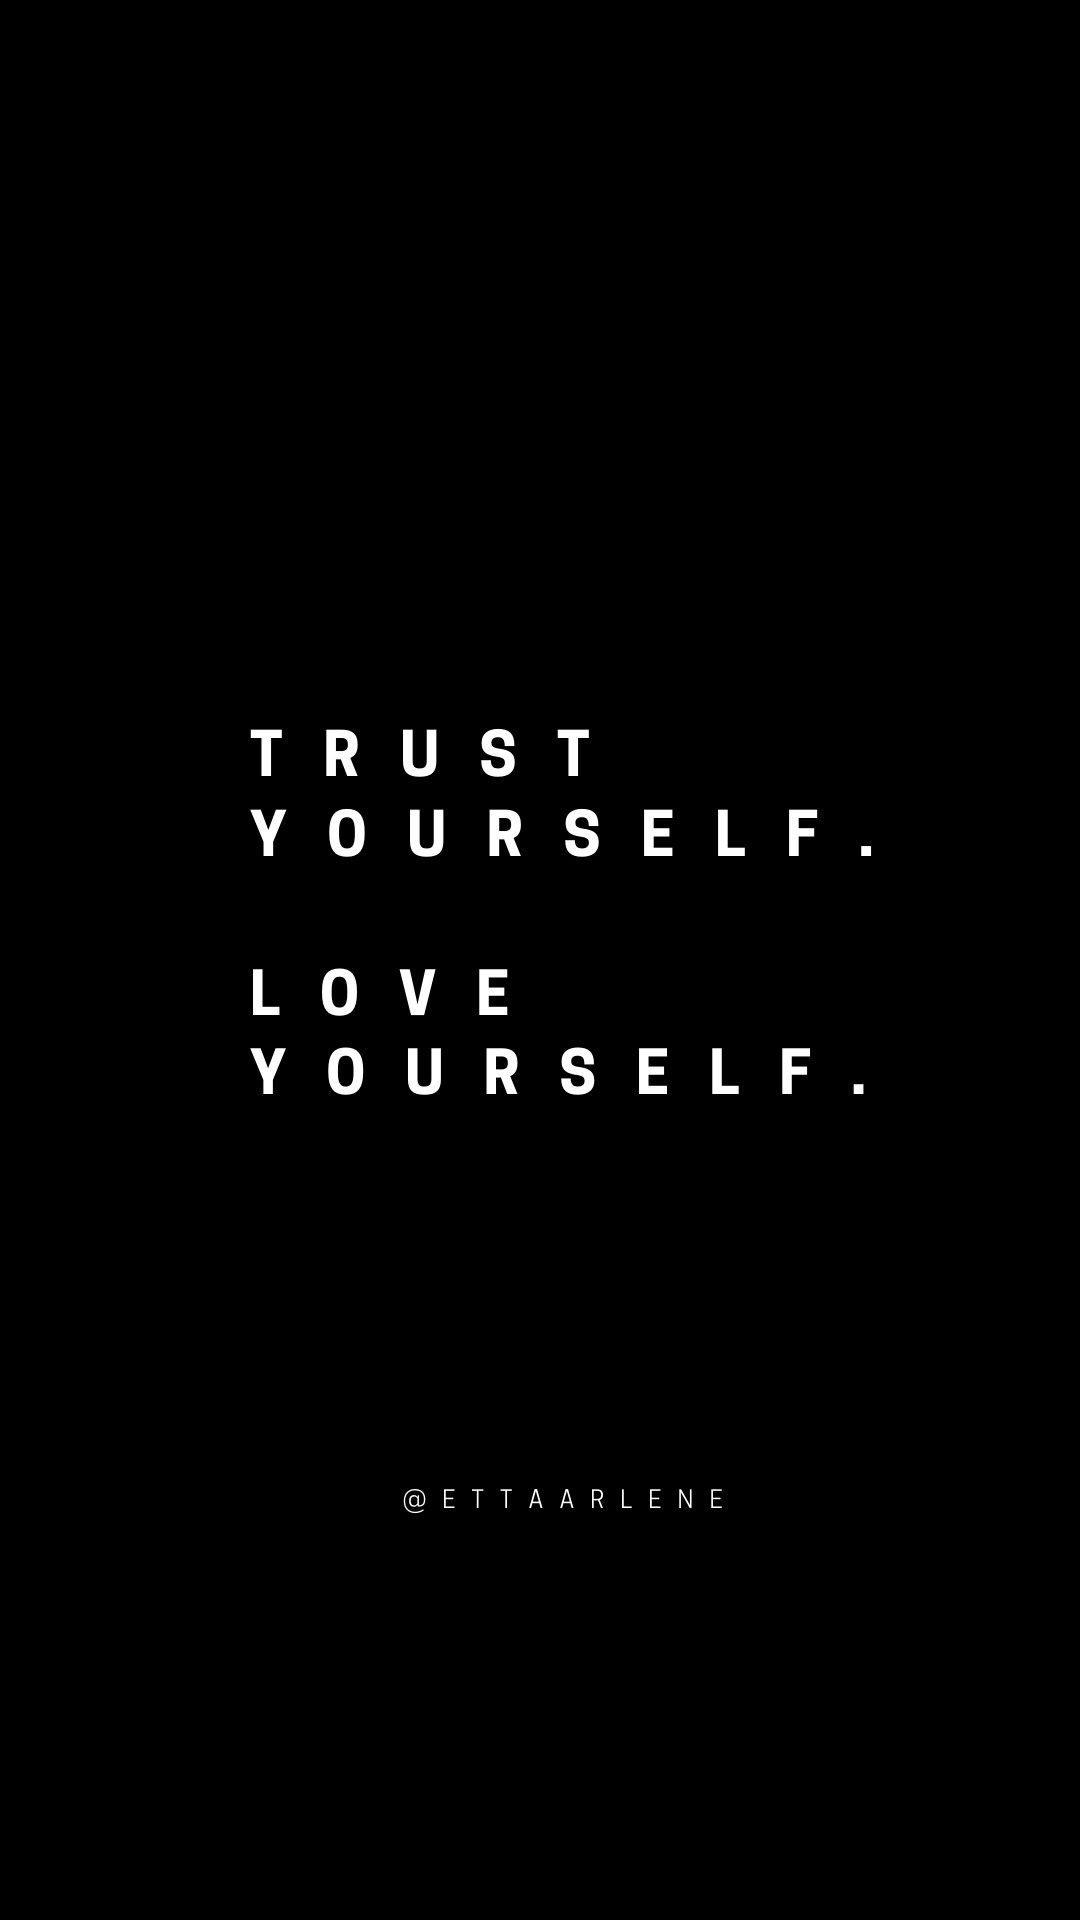 Love Yourself inspirational quote